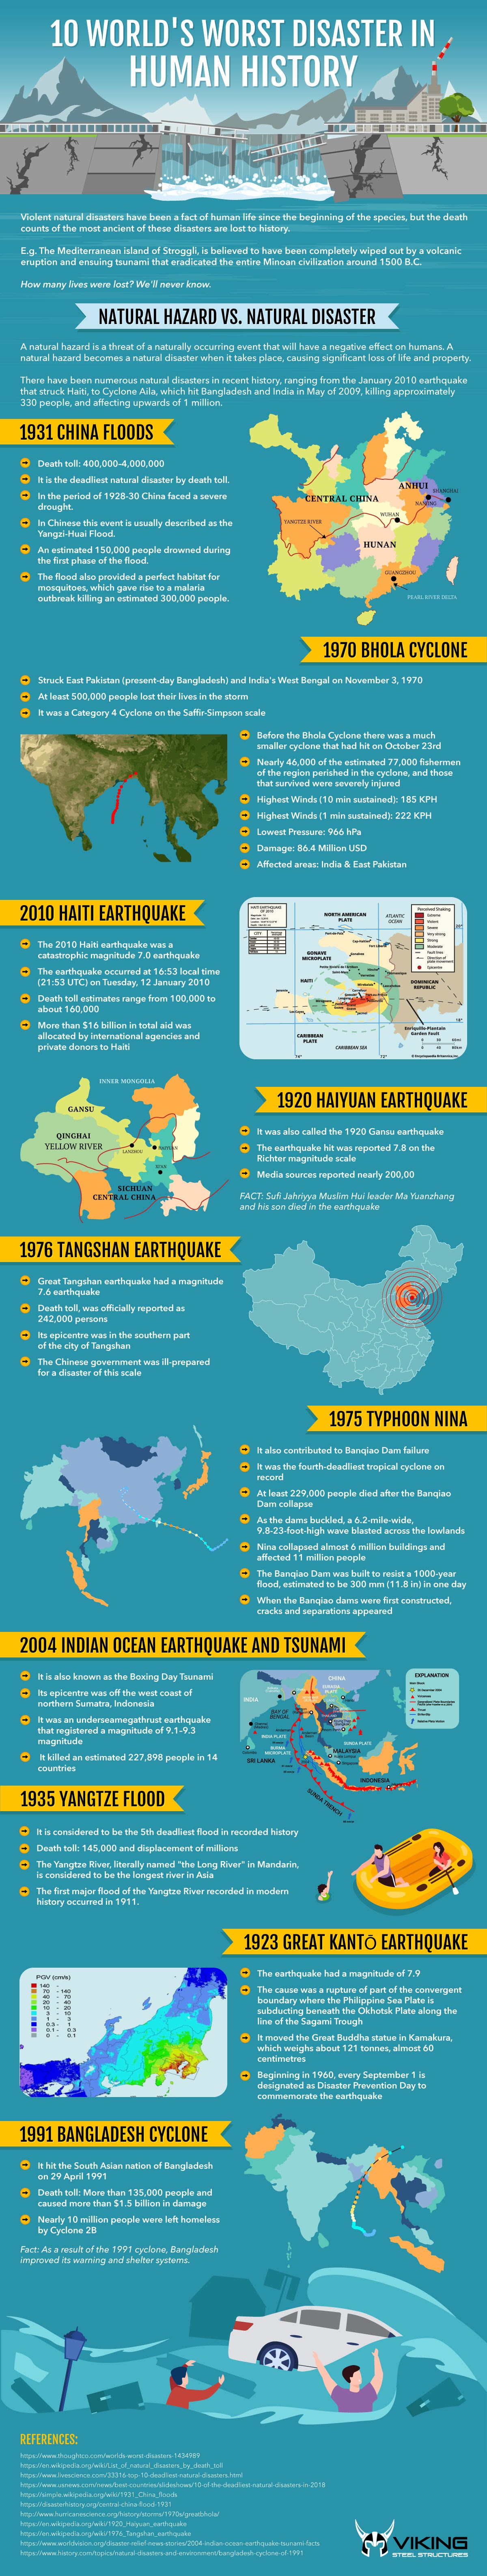 10-Worlds-Worst-Disaster-in-Human-History #infographic